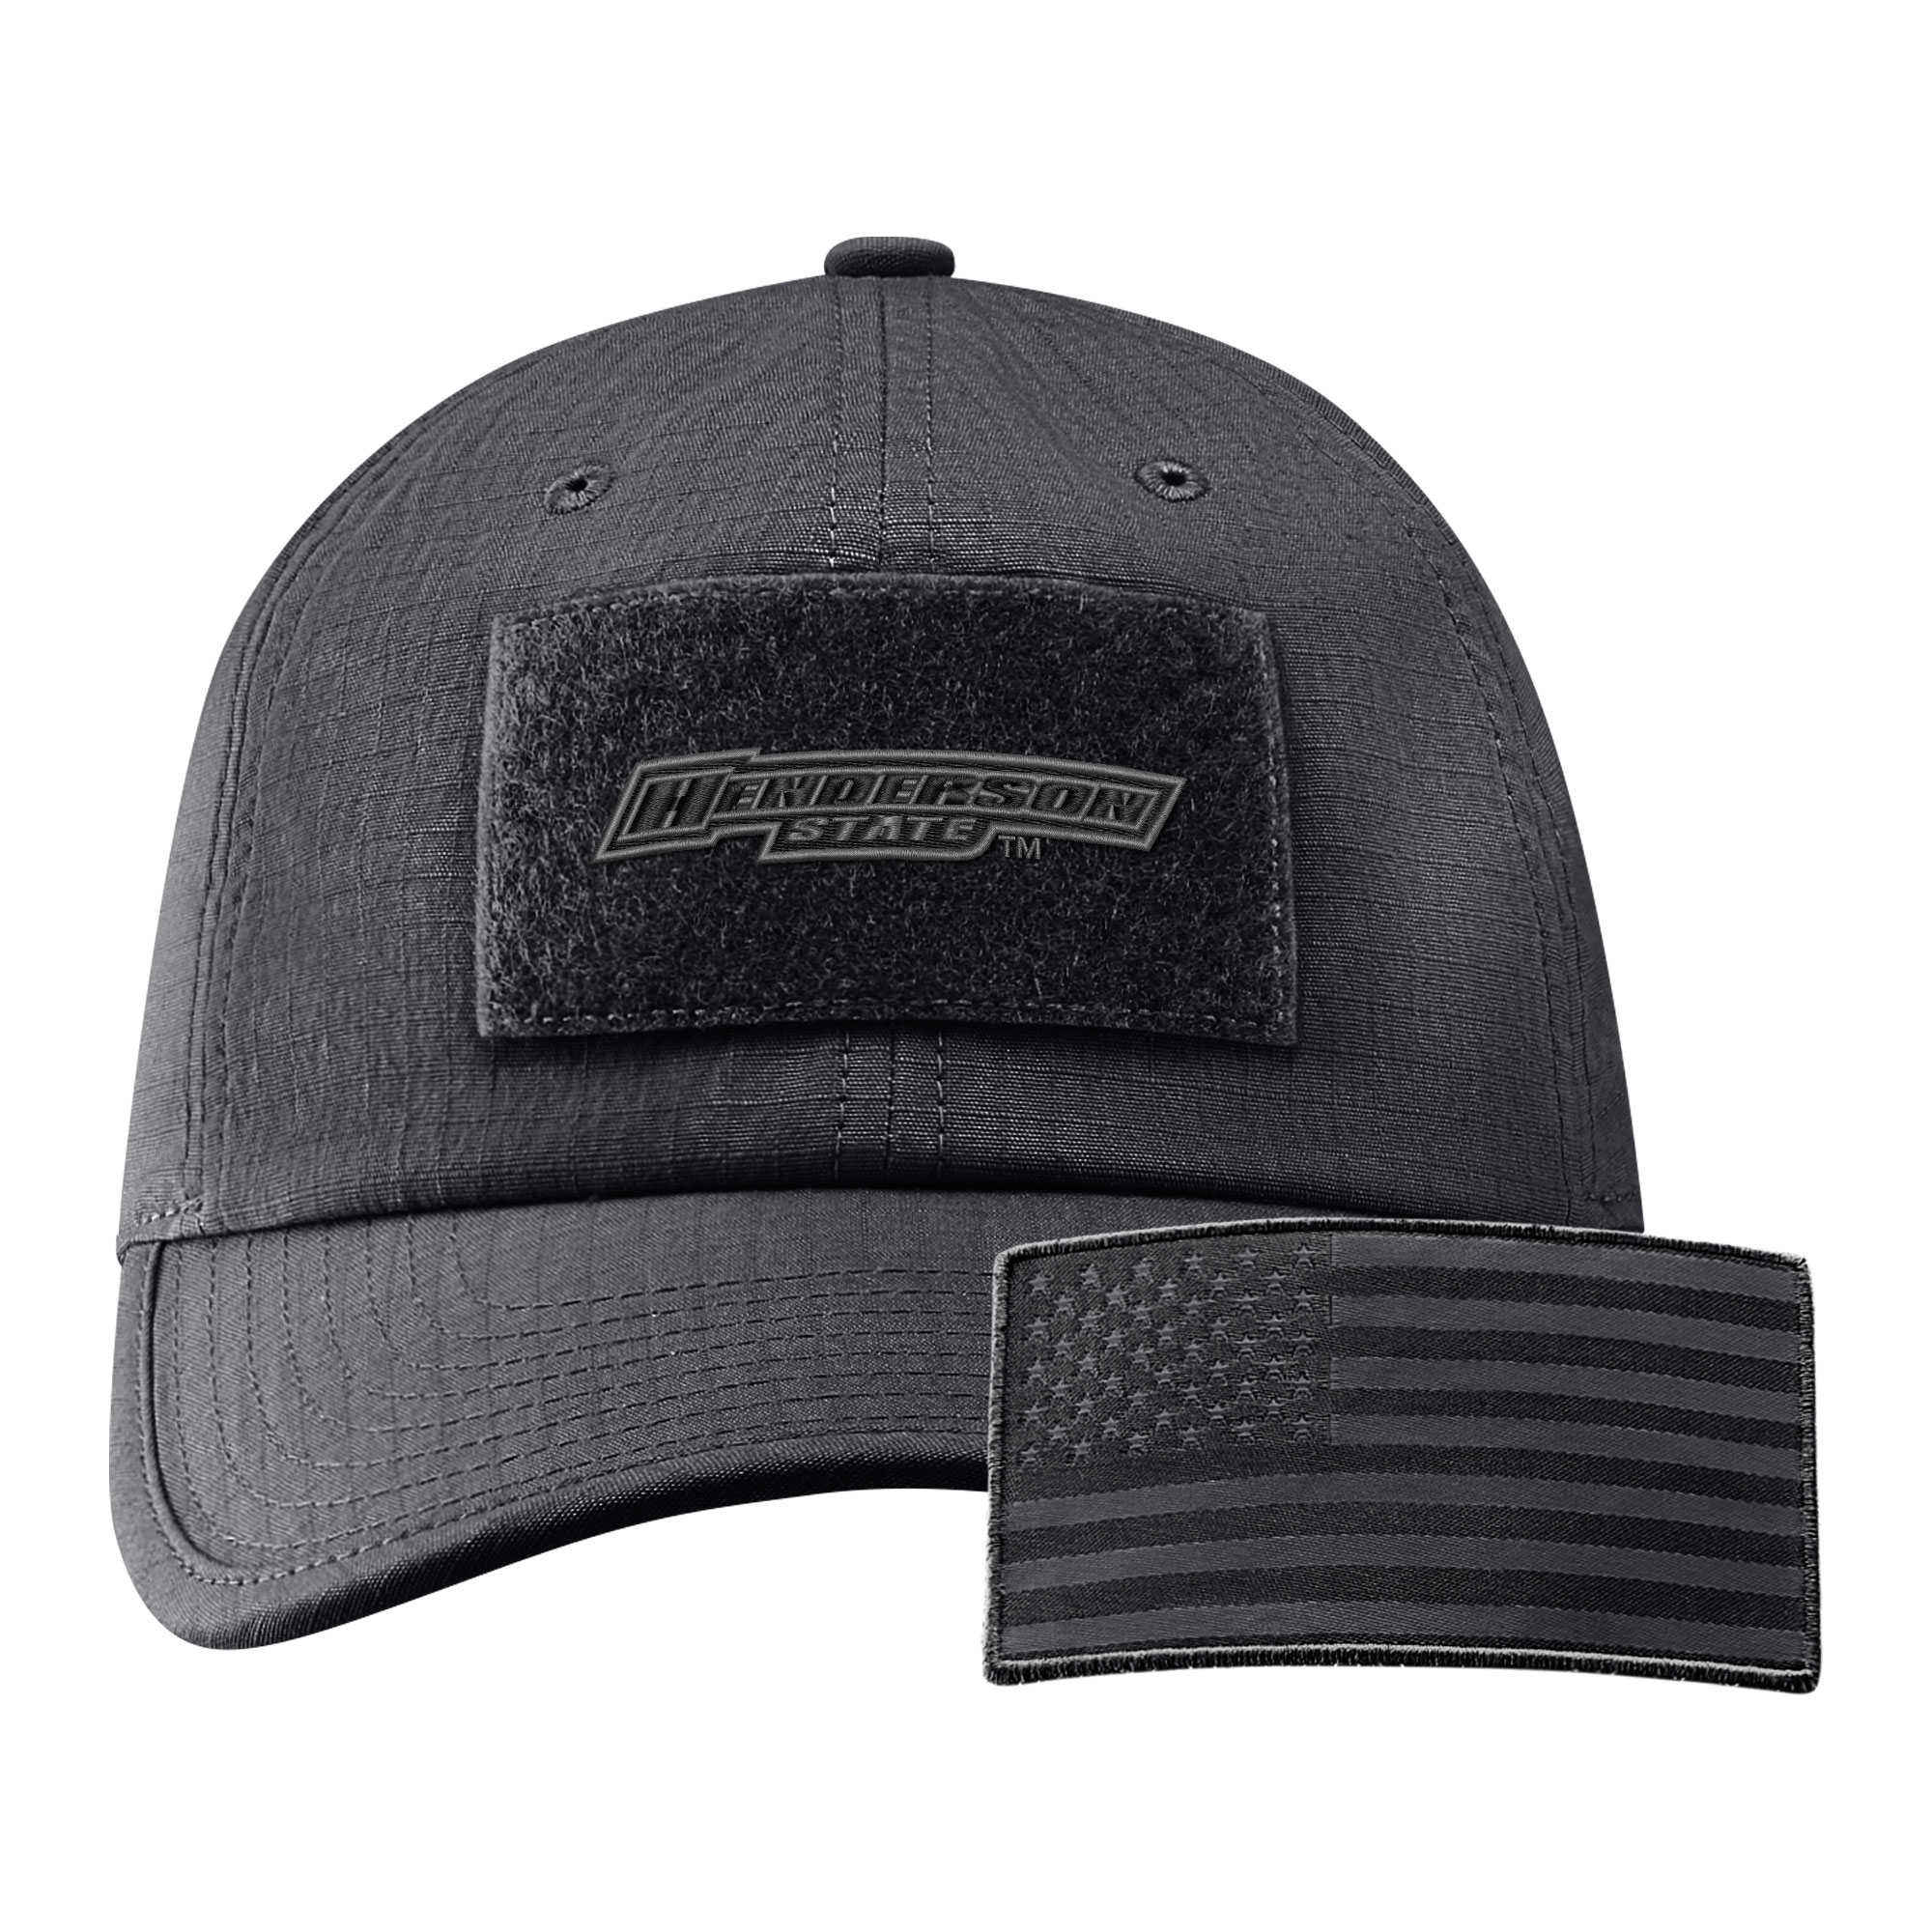 Henderson State Heritage 86 Tactical Hat